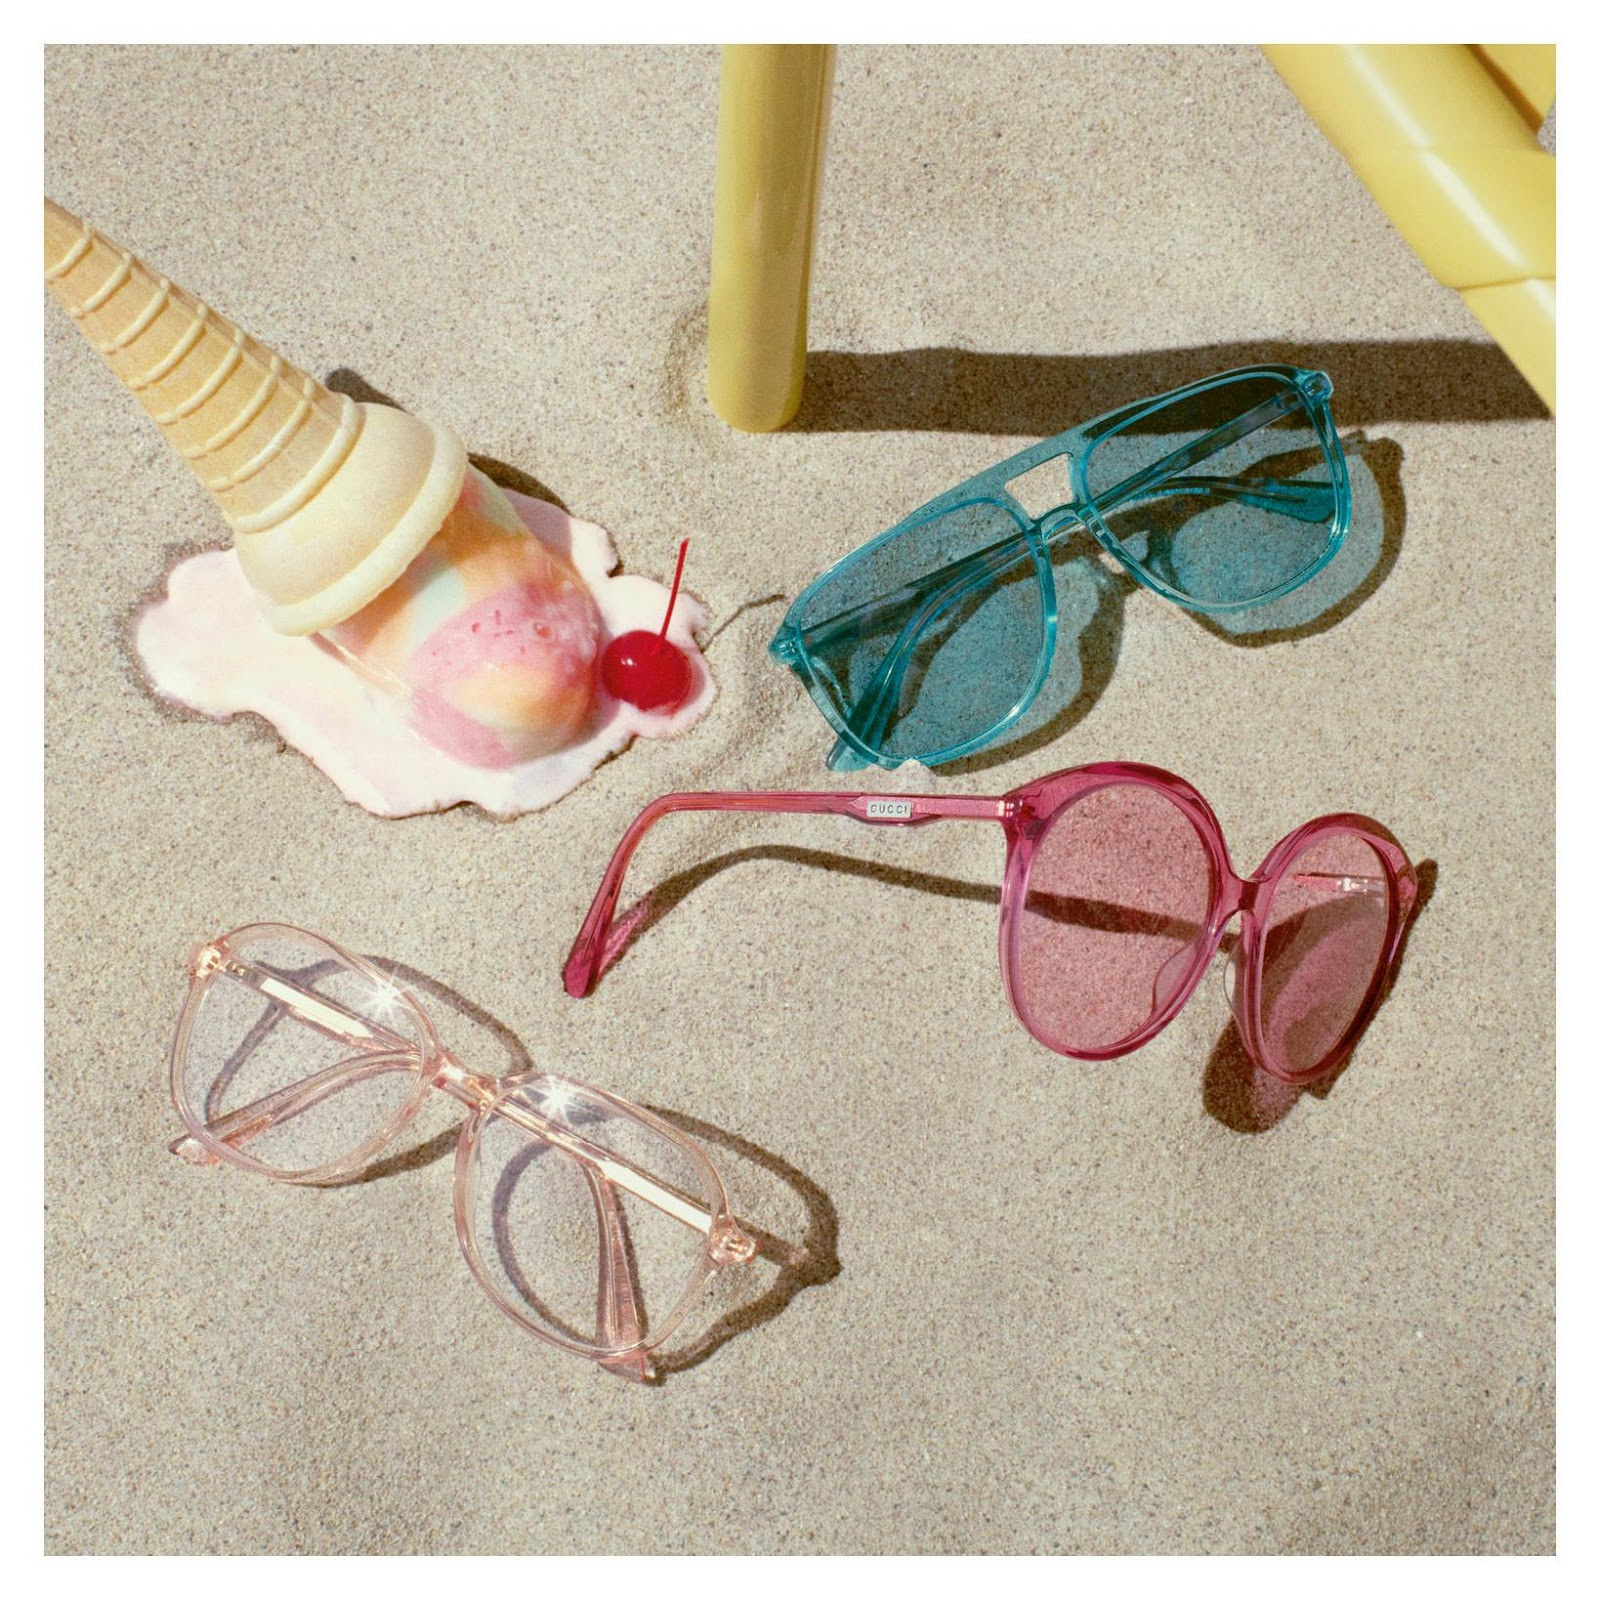 Gucci Venice Beach Shade Eyewear Summer 2018 Campaign